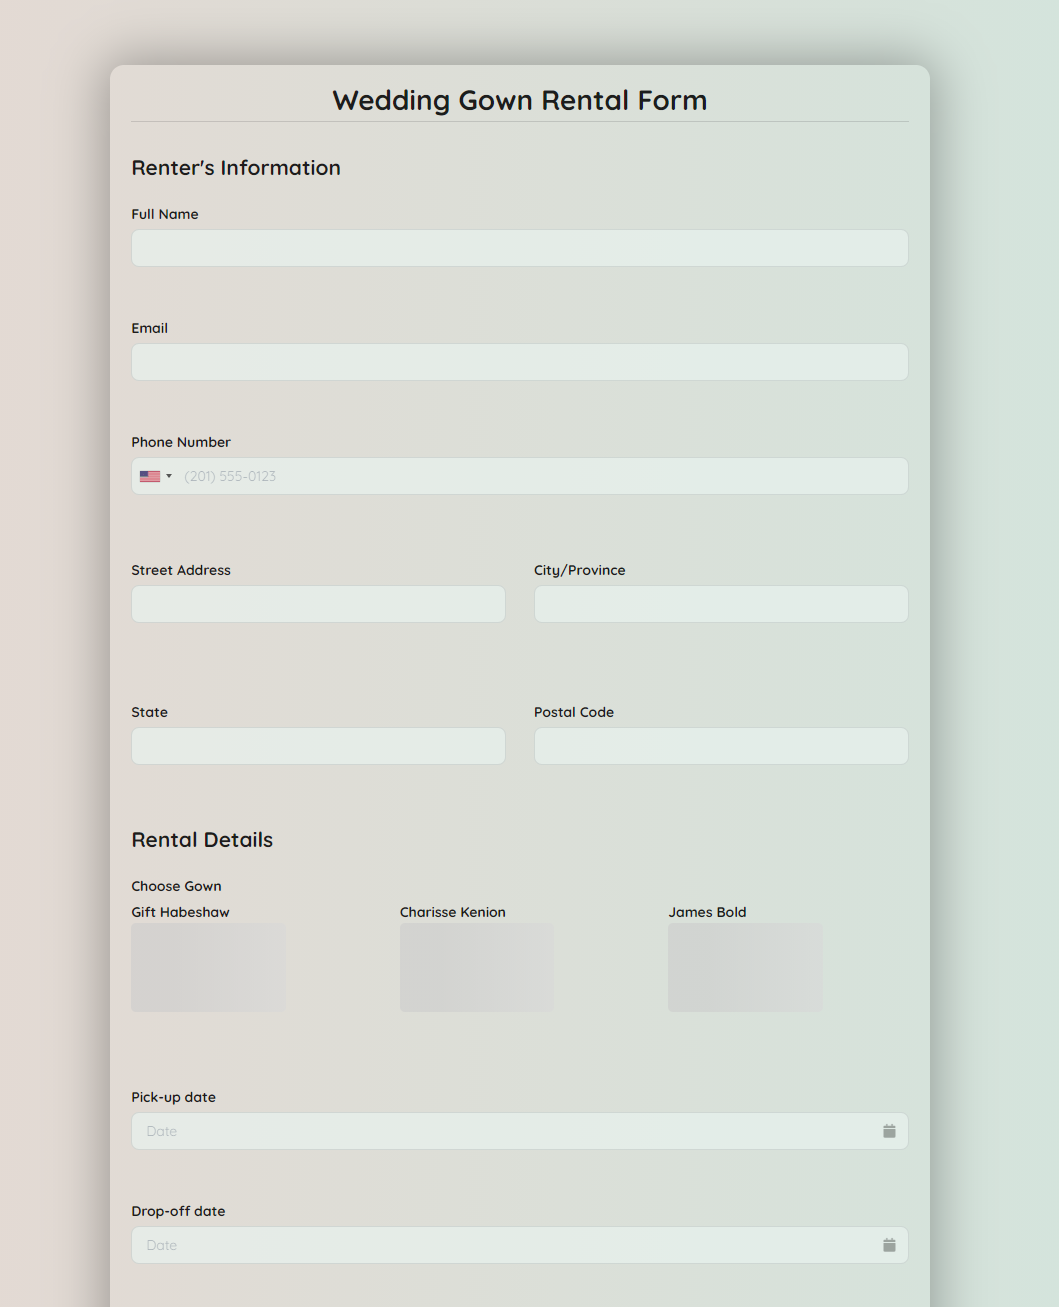 Wedding Gown Rental Form Template template